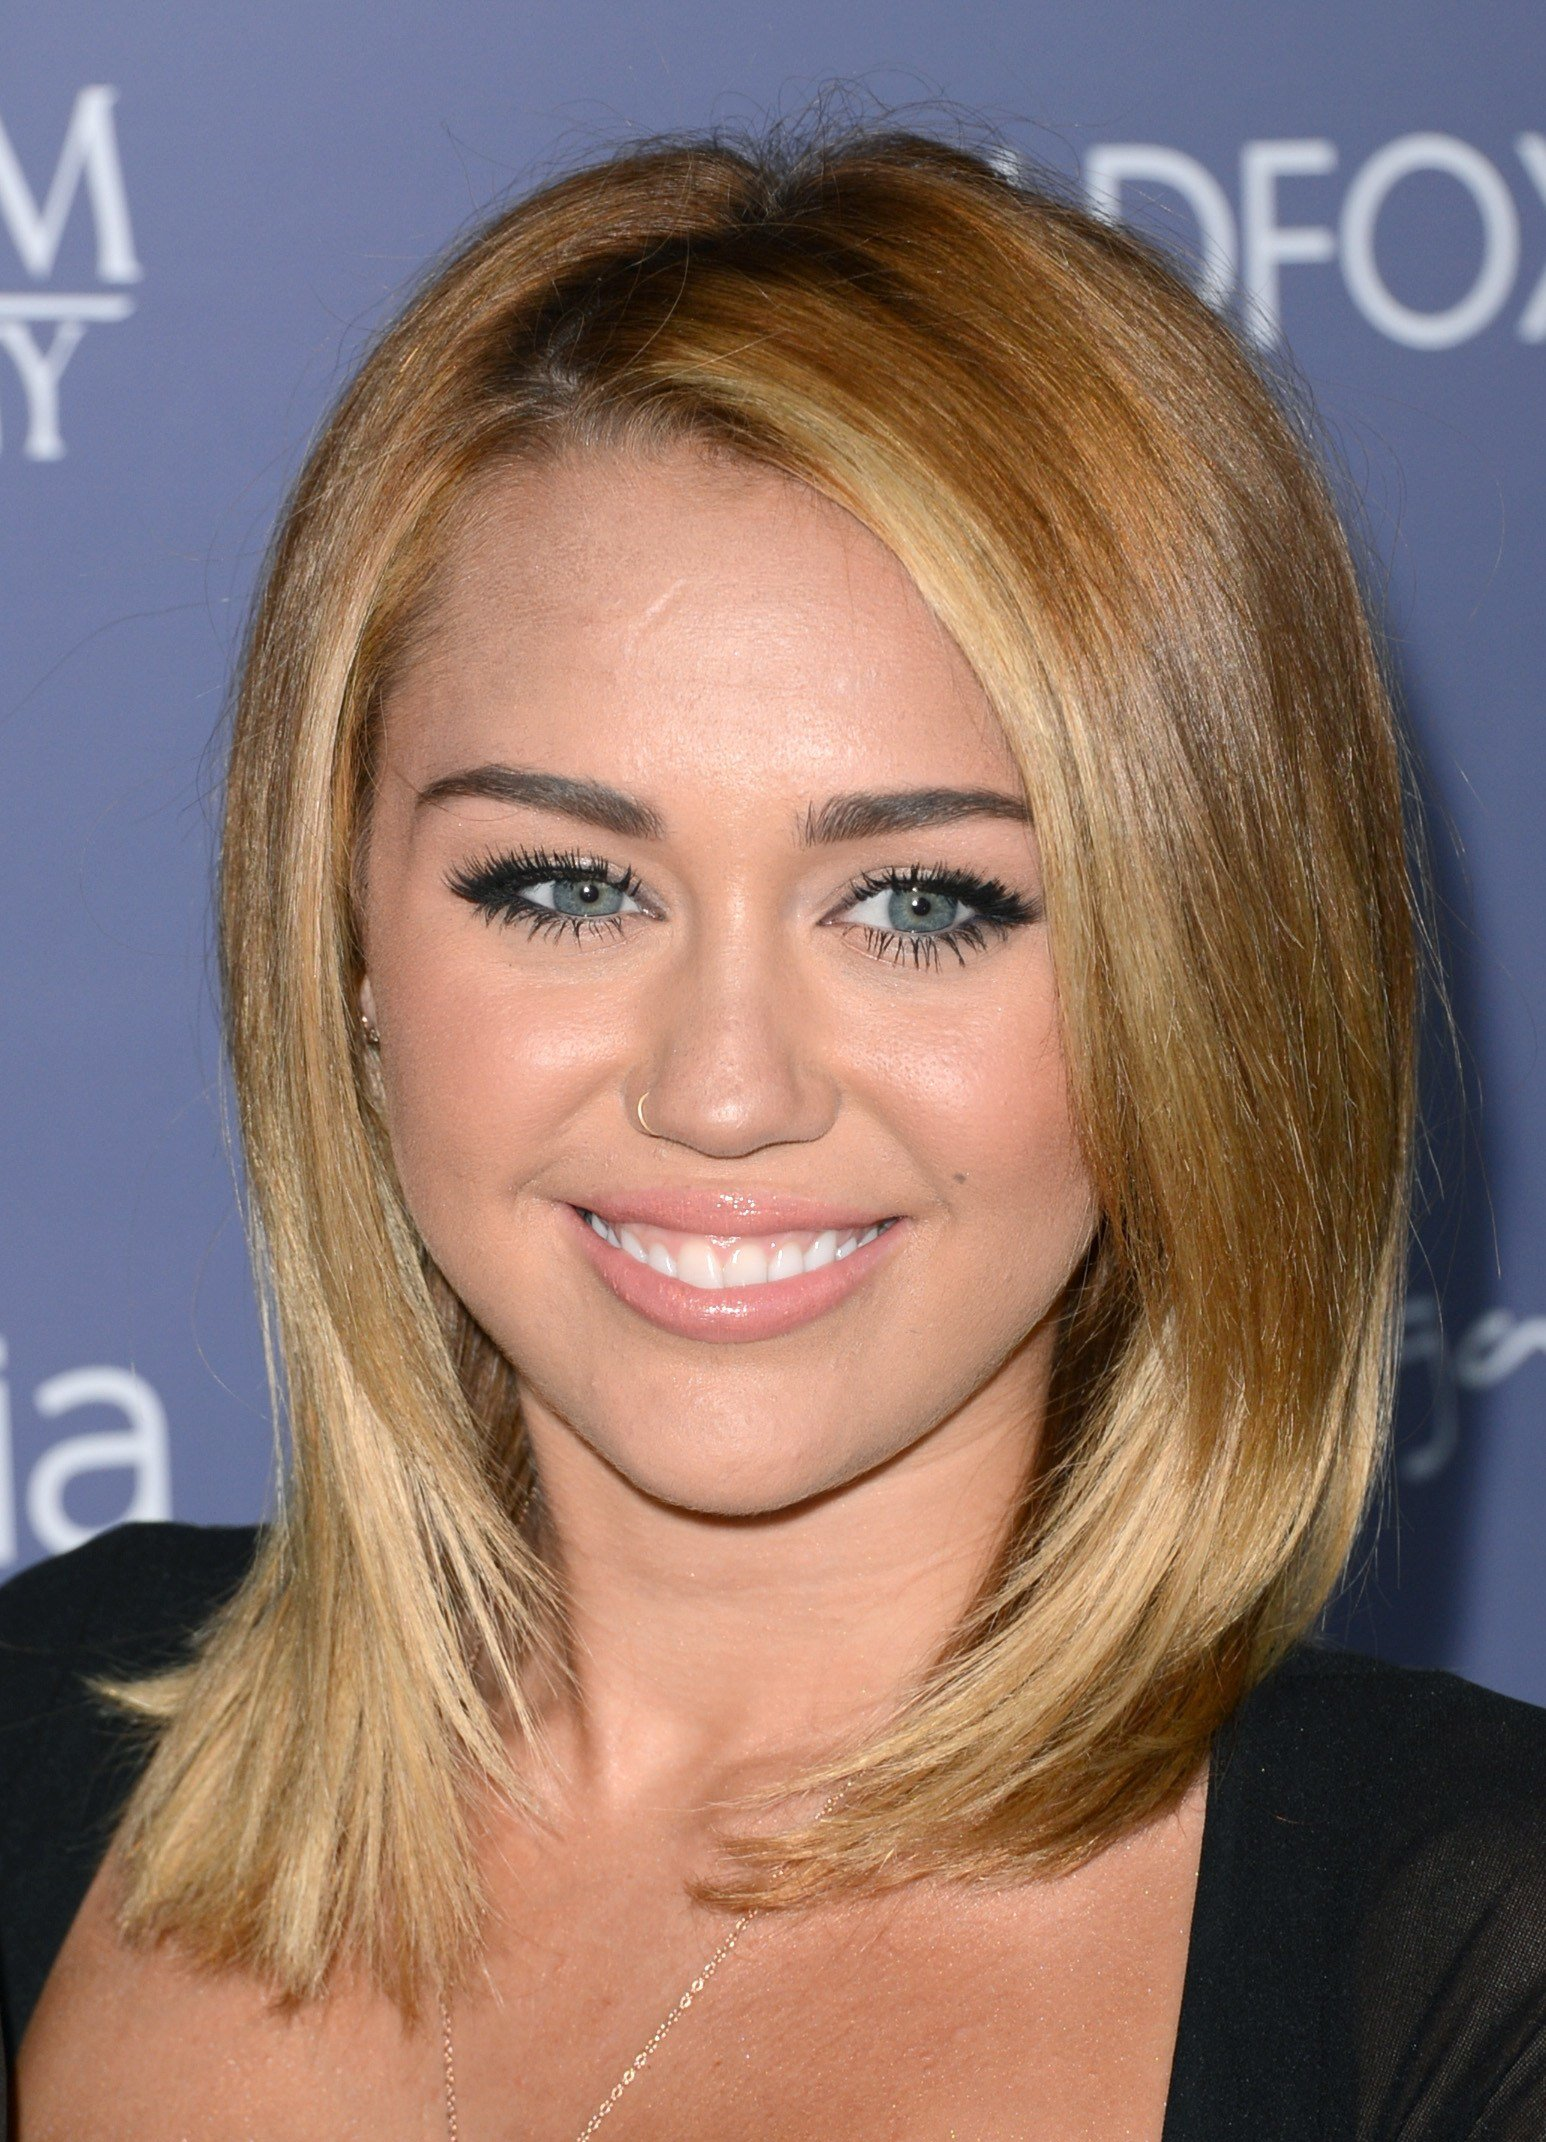 The Best Miley Cyrus's Hair We Rank The Good The Bad And The Pictures